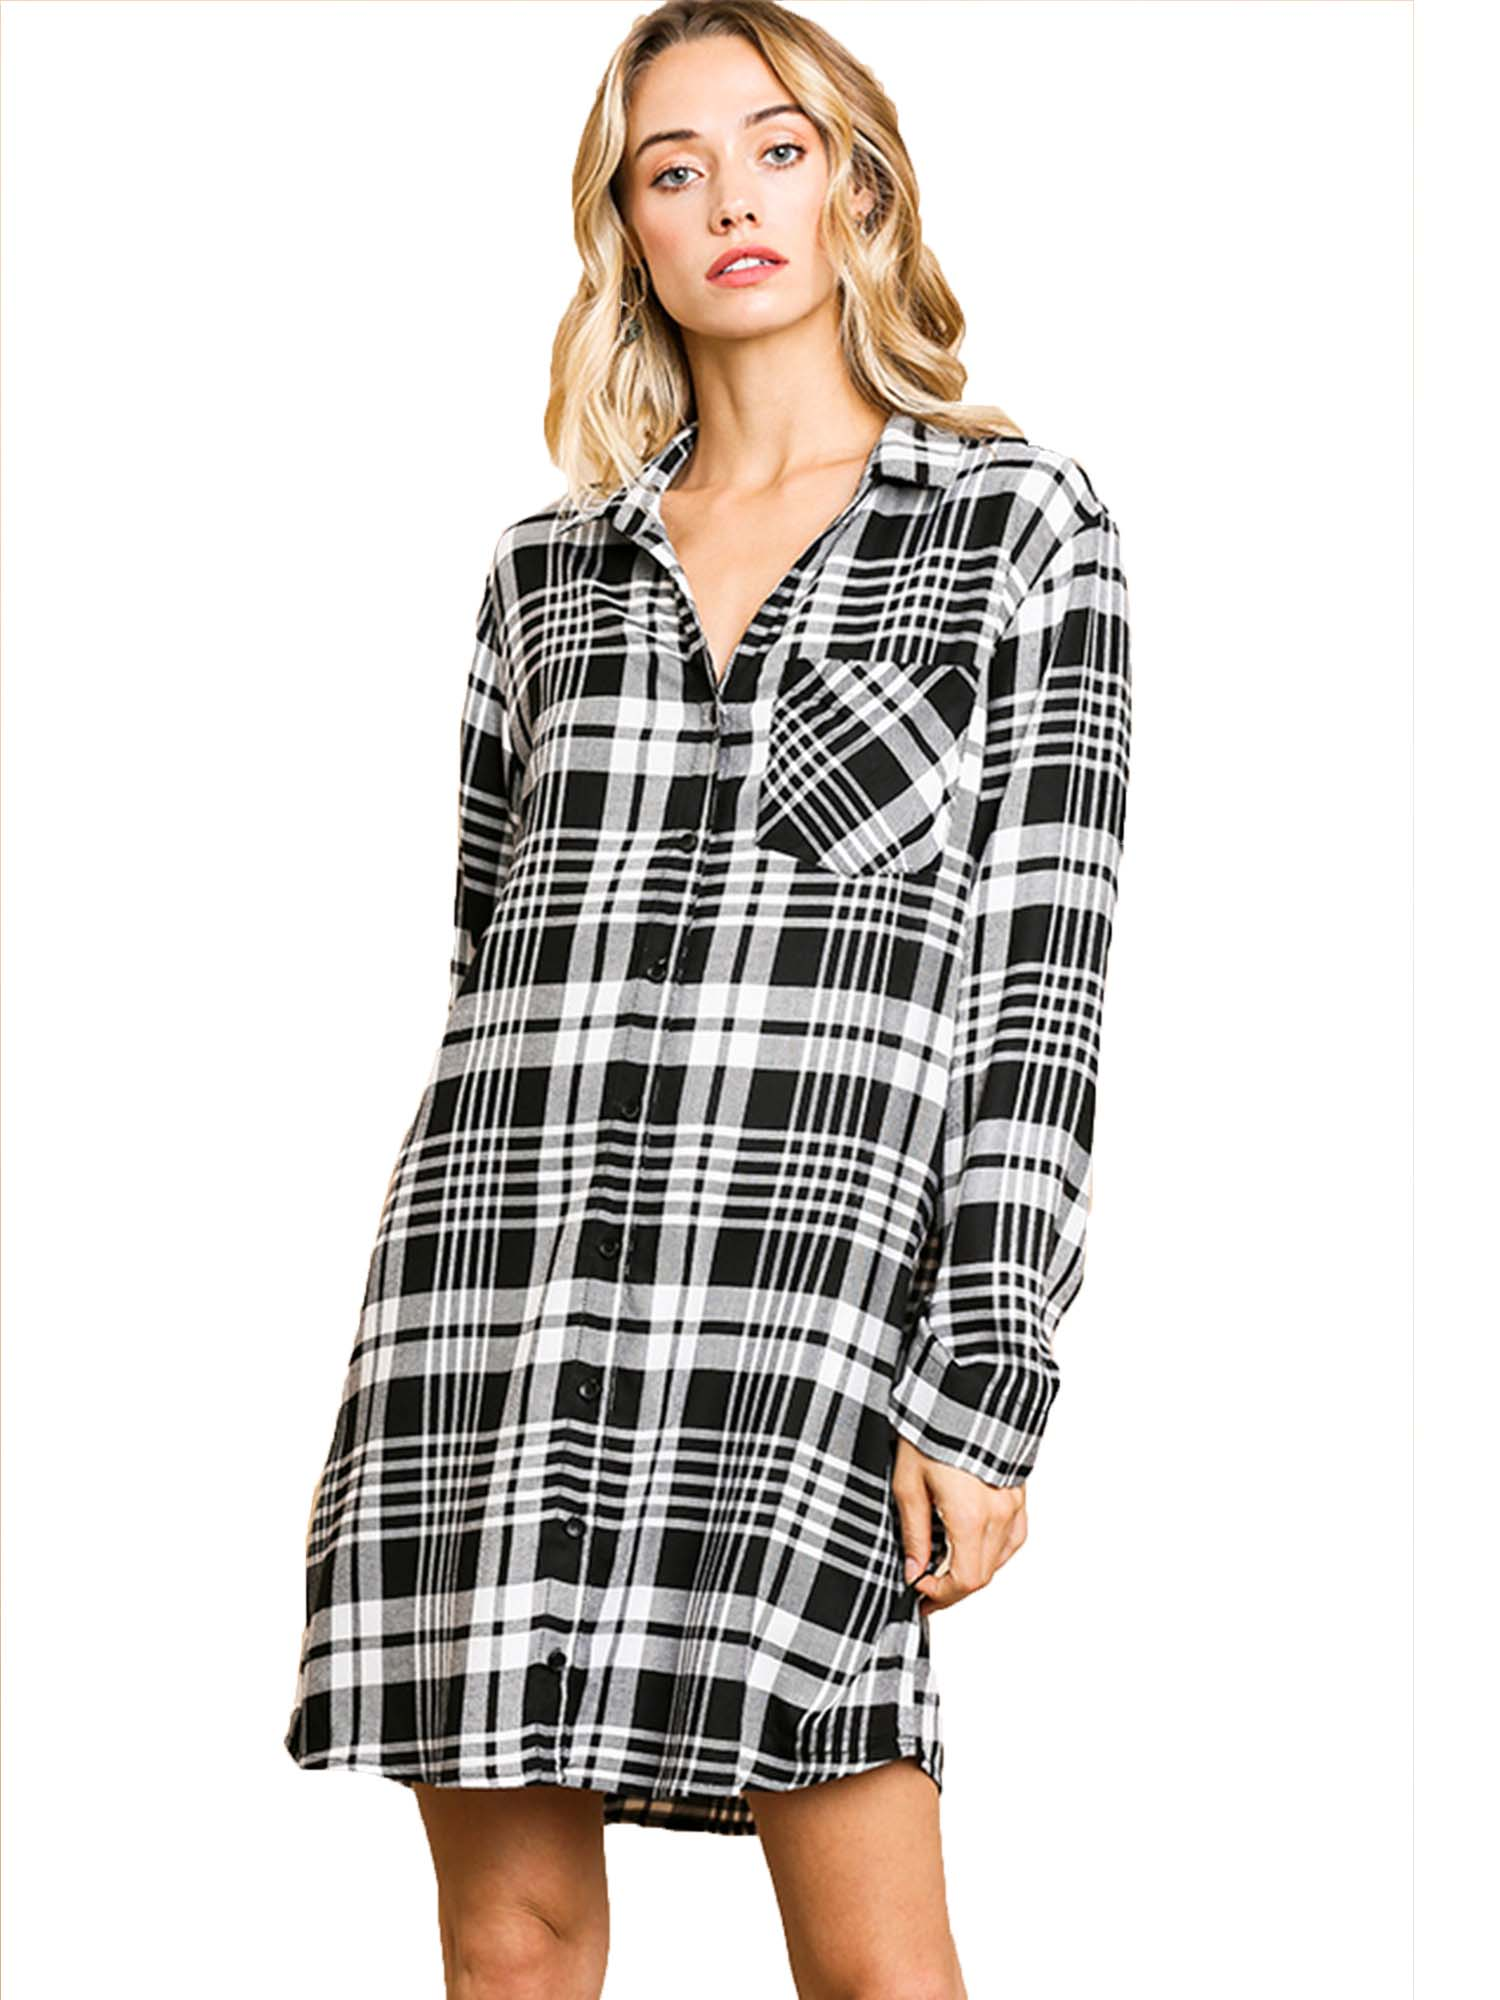 Black White Flannel Plaid Print Long Sleeve Button Front Dress Tunic